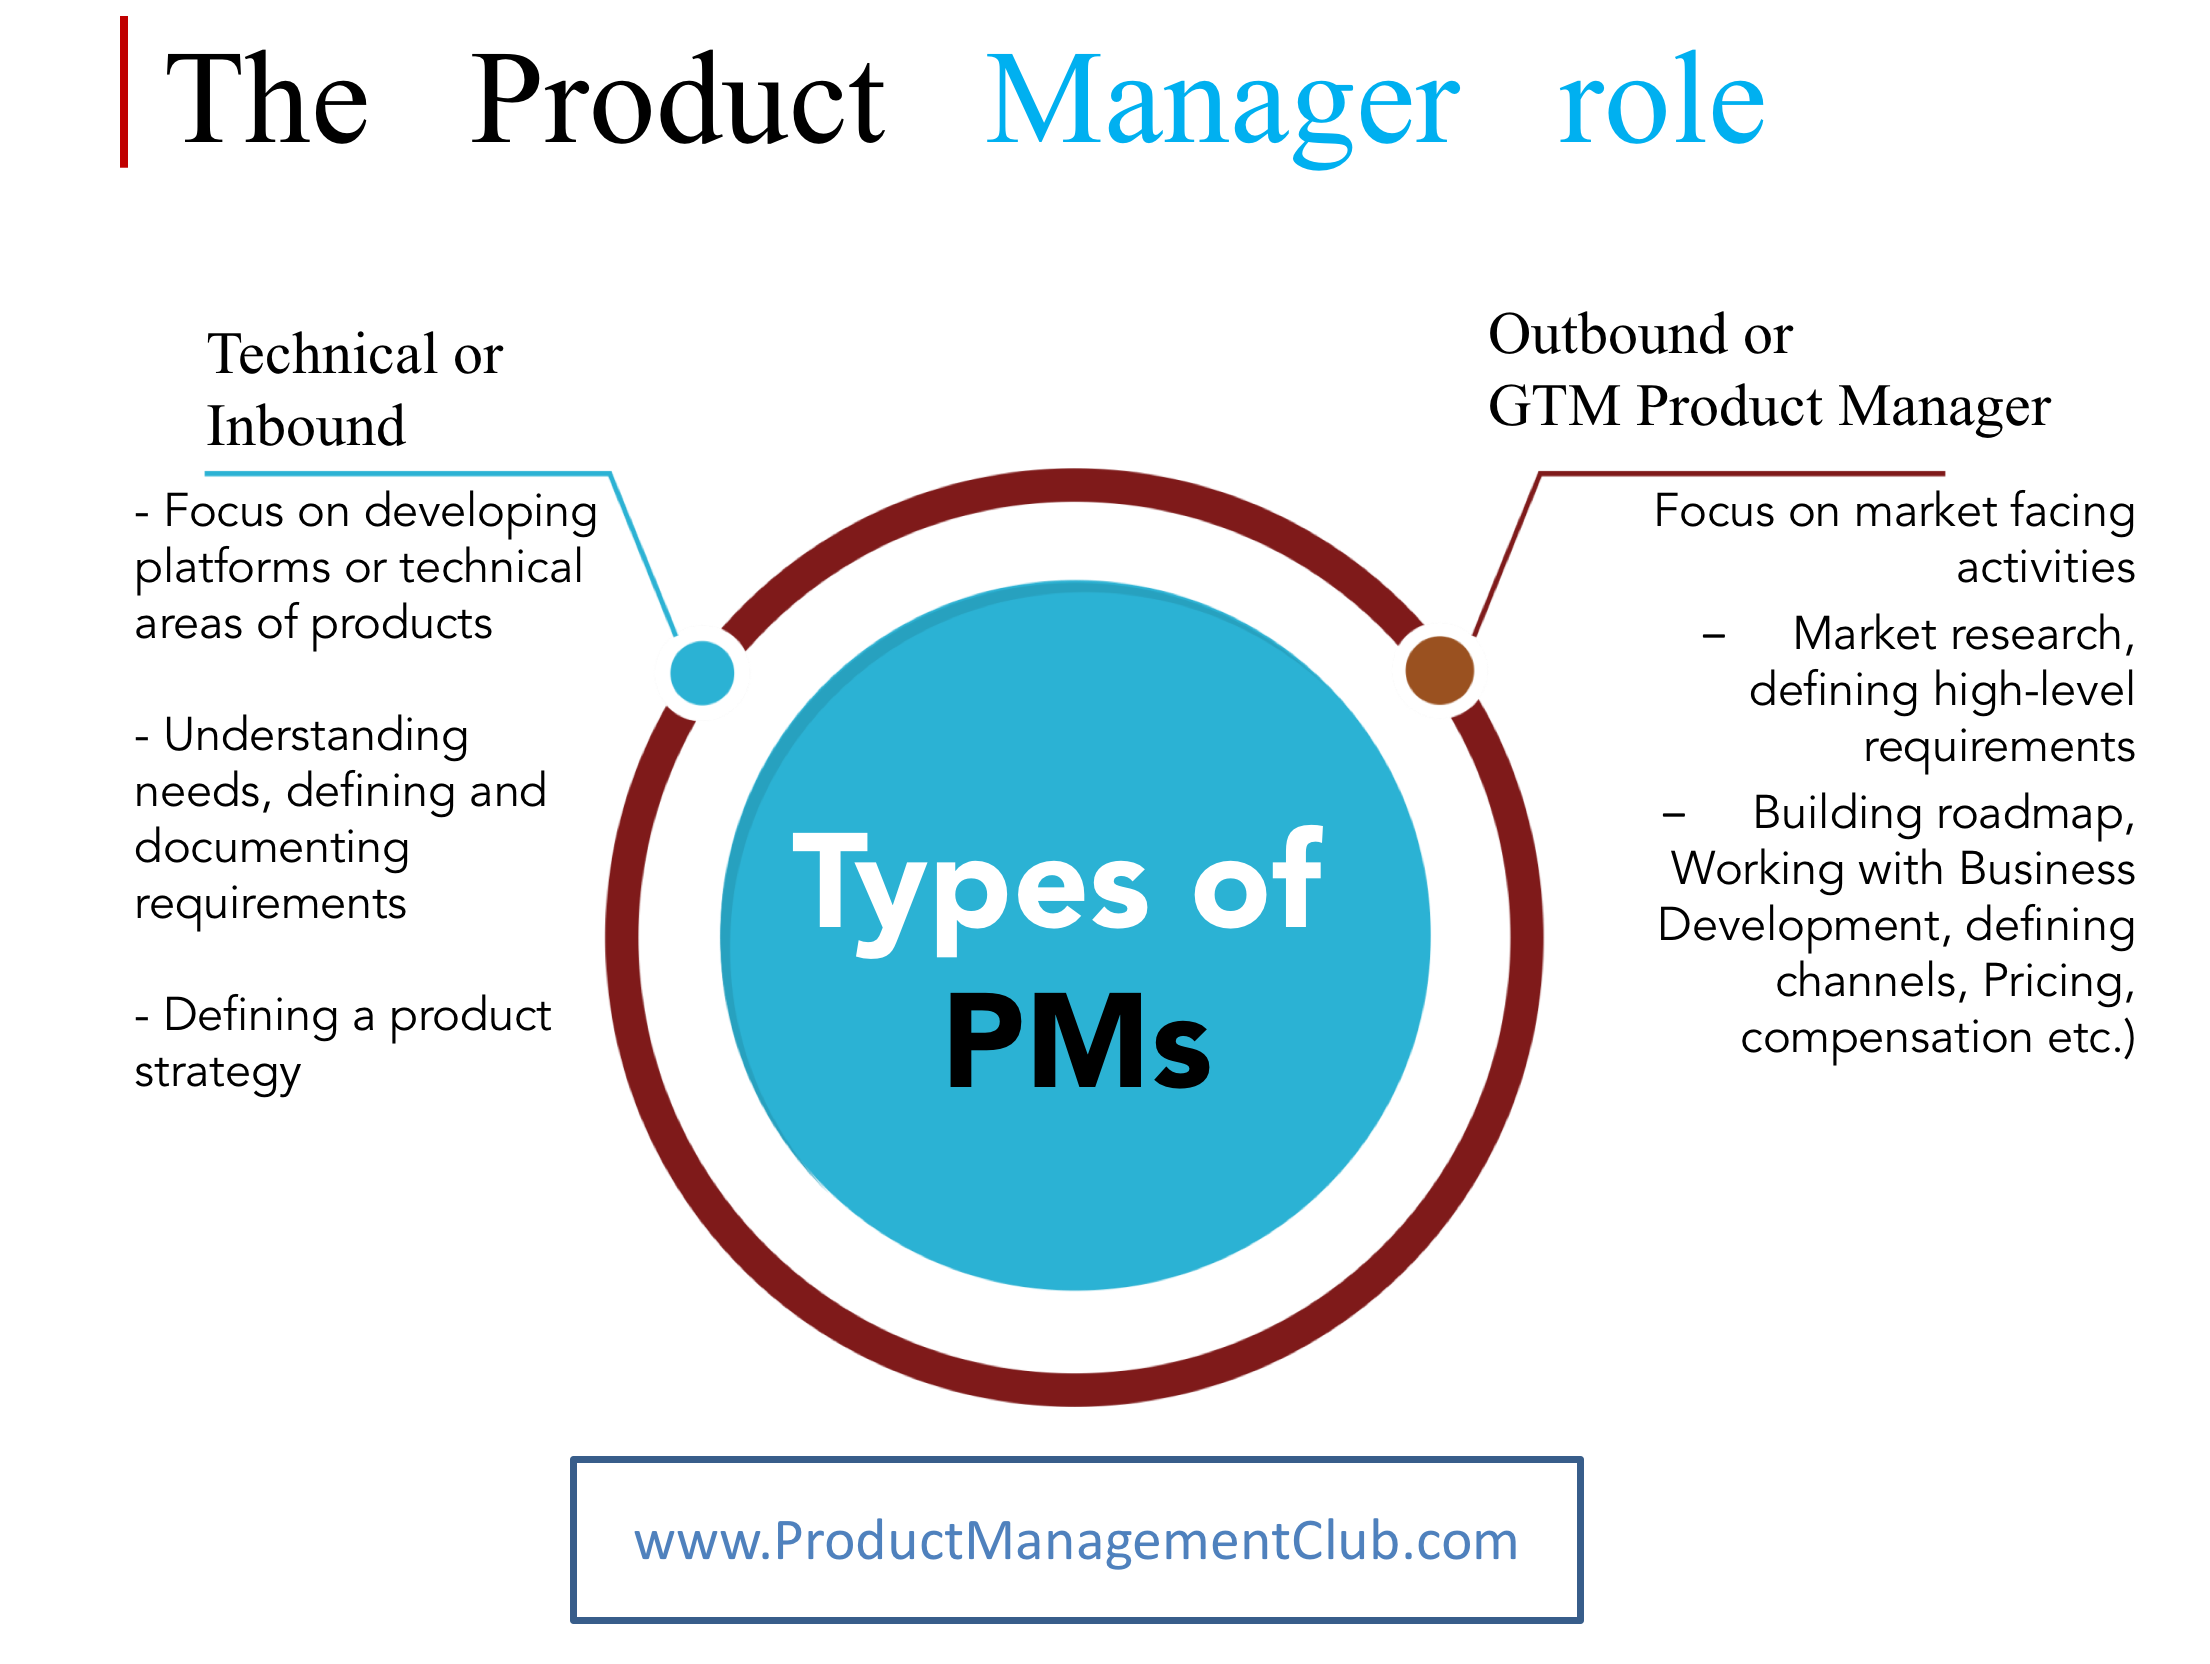 can i become a product manager product management club